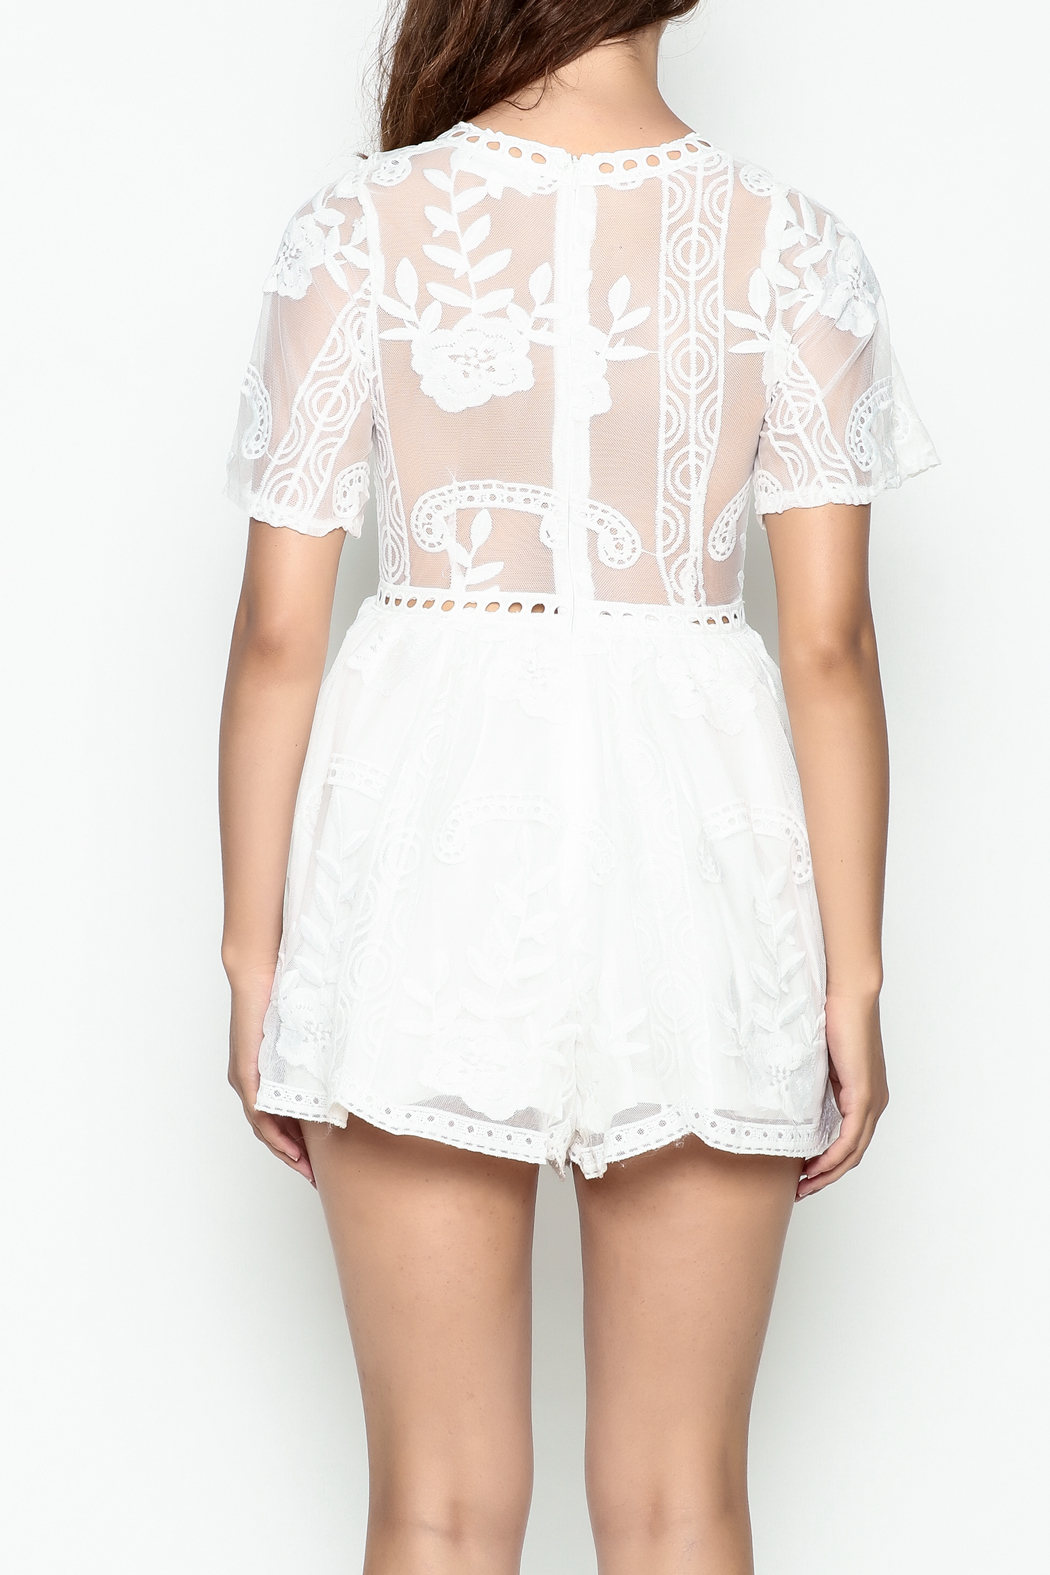 L'atiste Lace White Romper - Back Cropped Image